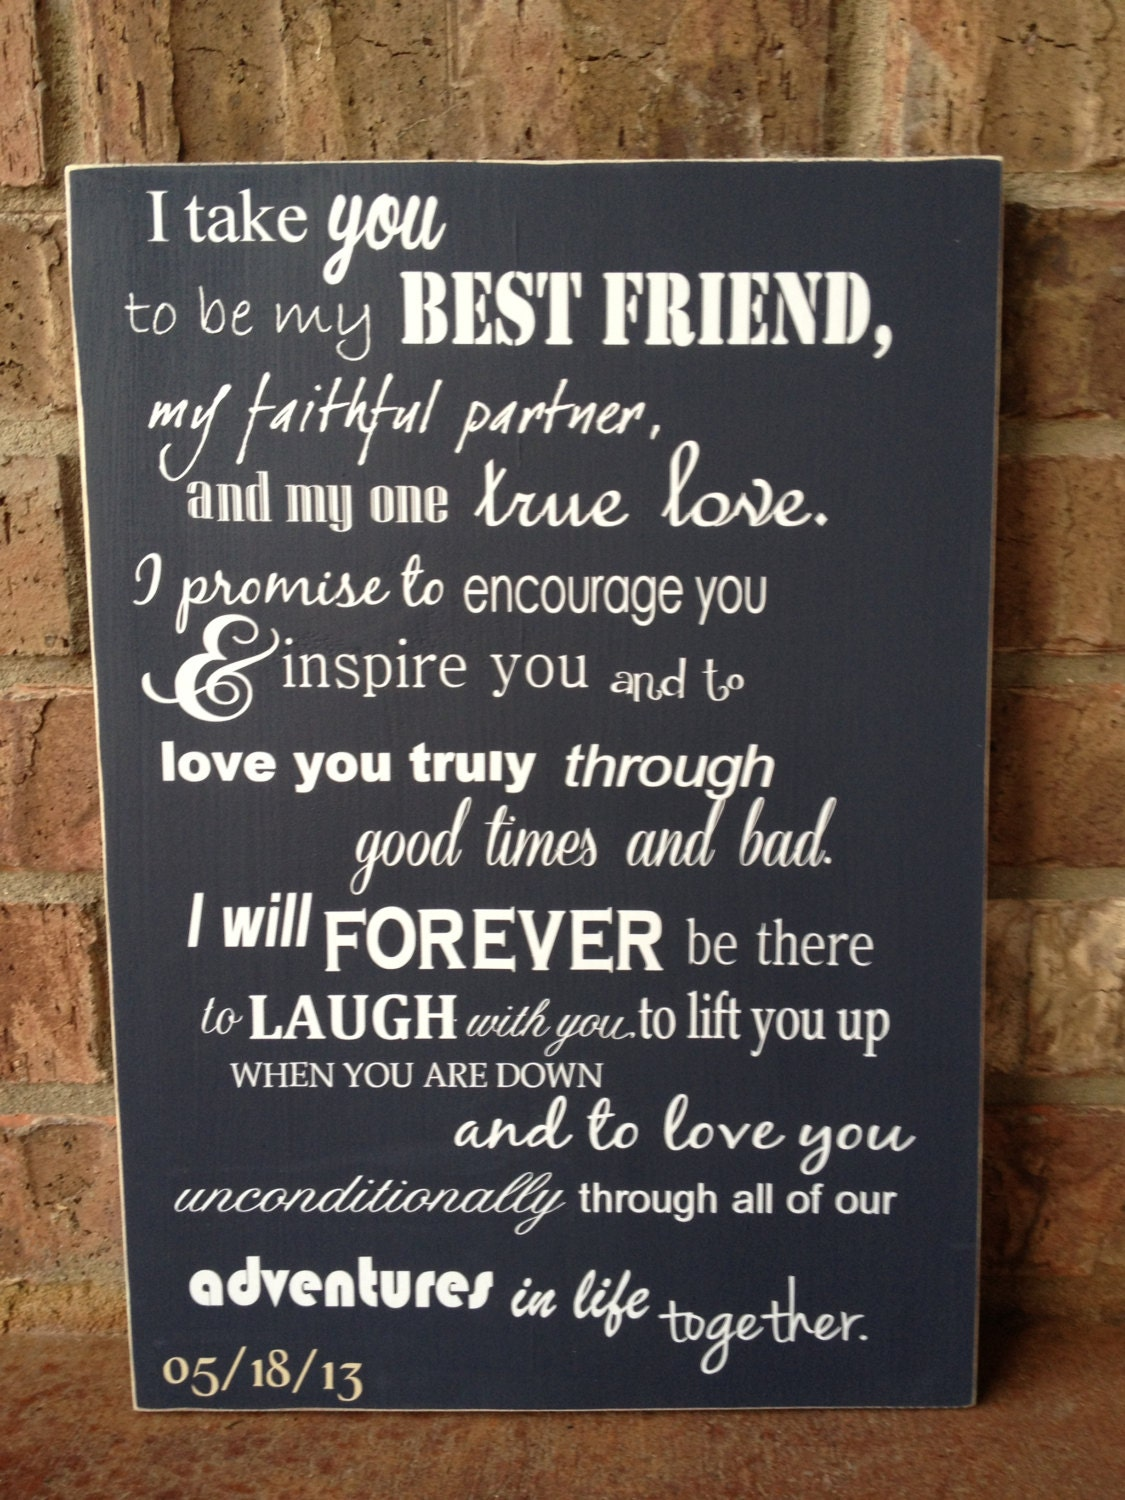 Best Friend Sister Wedding Quotes : I take you to be my best friend wedding sign by